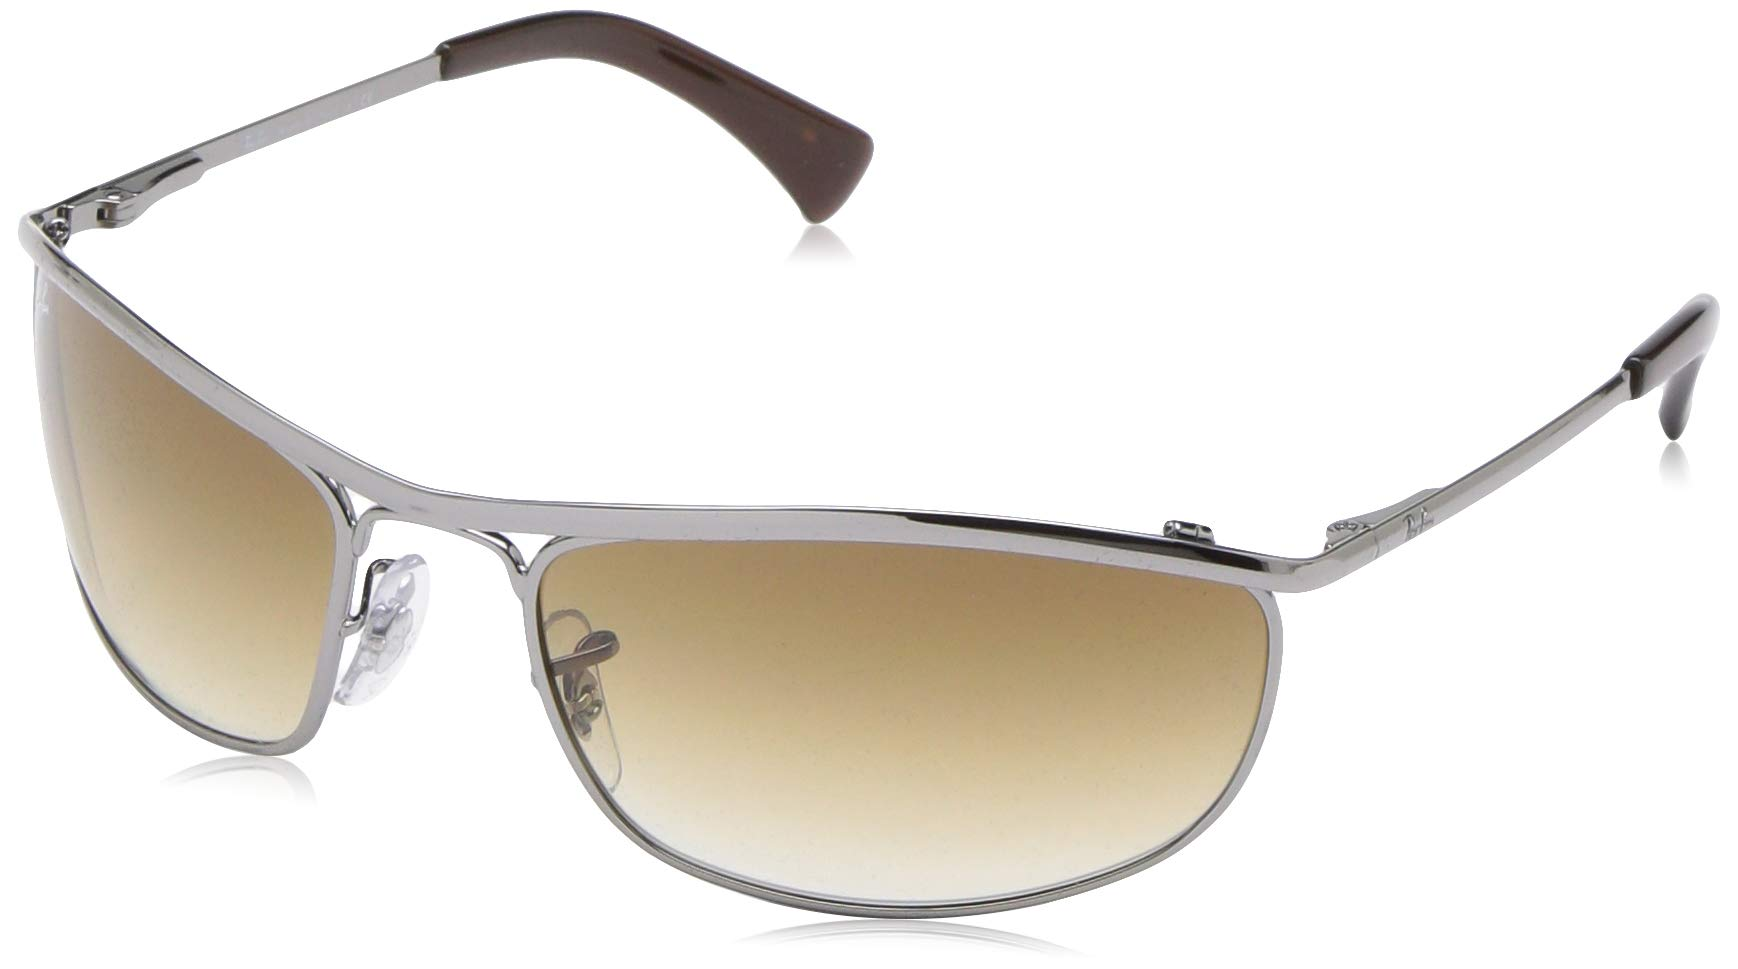 RAY-BAN RB3119 Olympian Wrapped Rectangular Sunglasses, Gunmetal/Brown Gradient, 62 mm by RAY-BAN